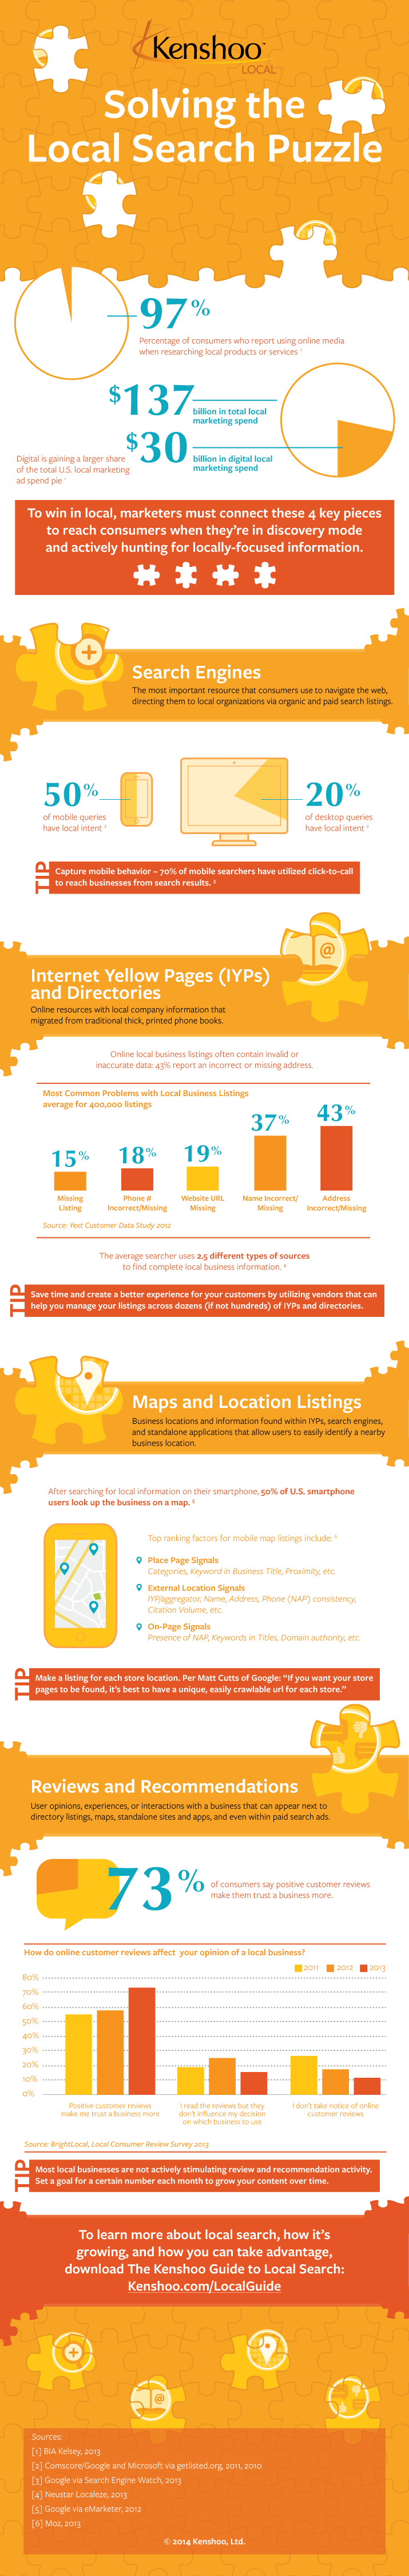 Stimulating Interaction and New Business through Local Search  - infographic